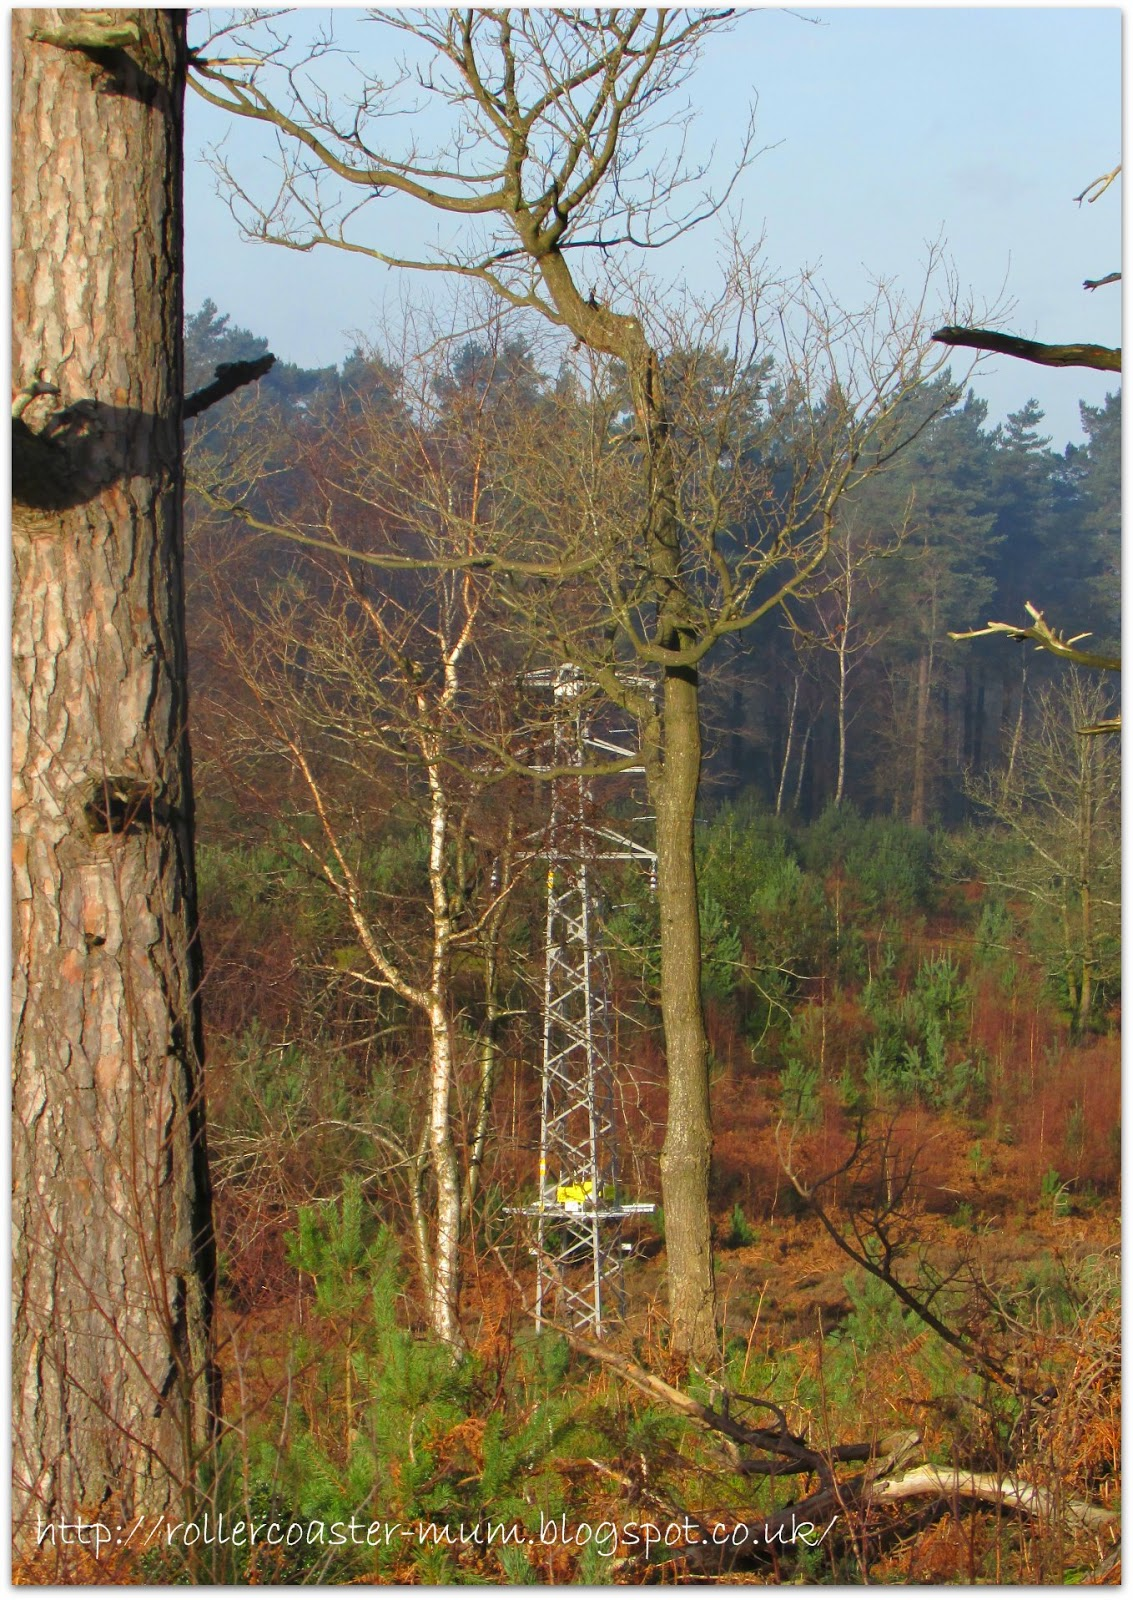 electricity pylons, National Trust Devil's Punch Bowl, Surrey Hills